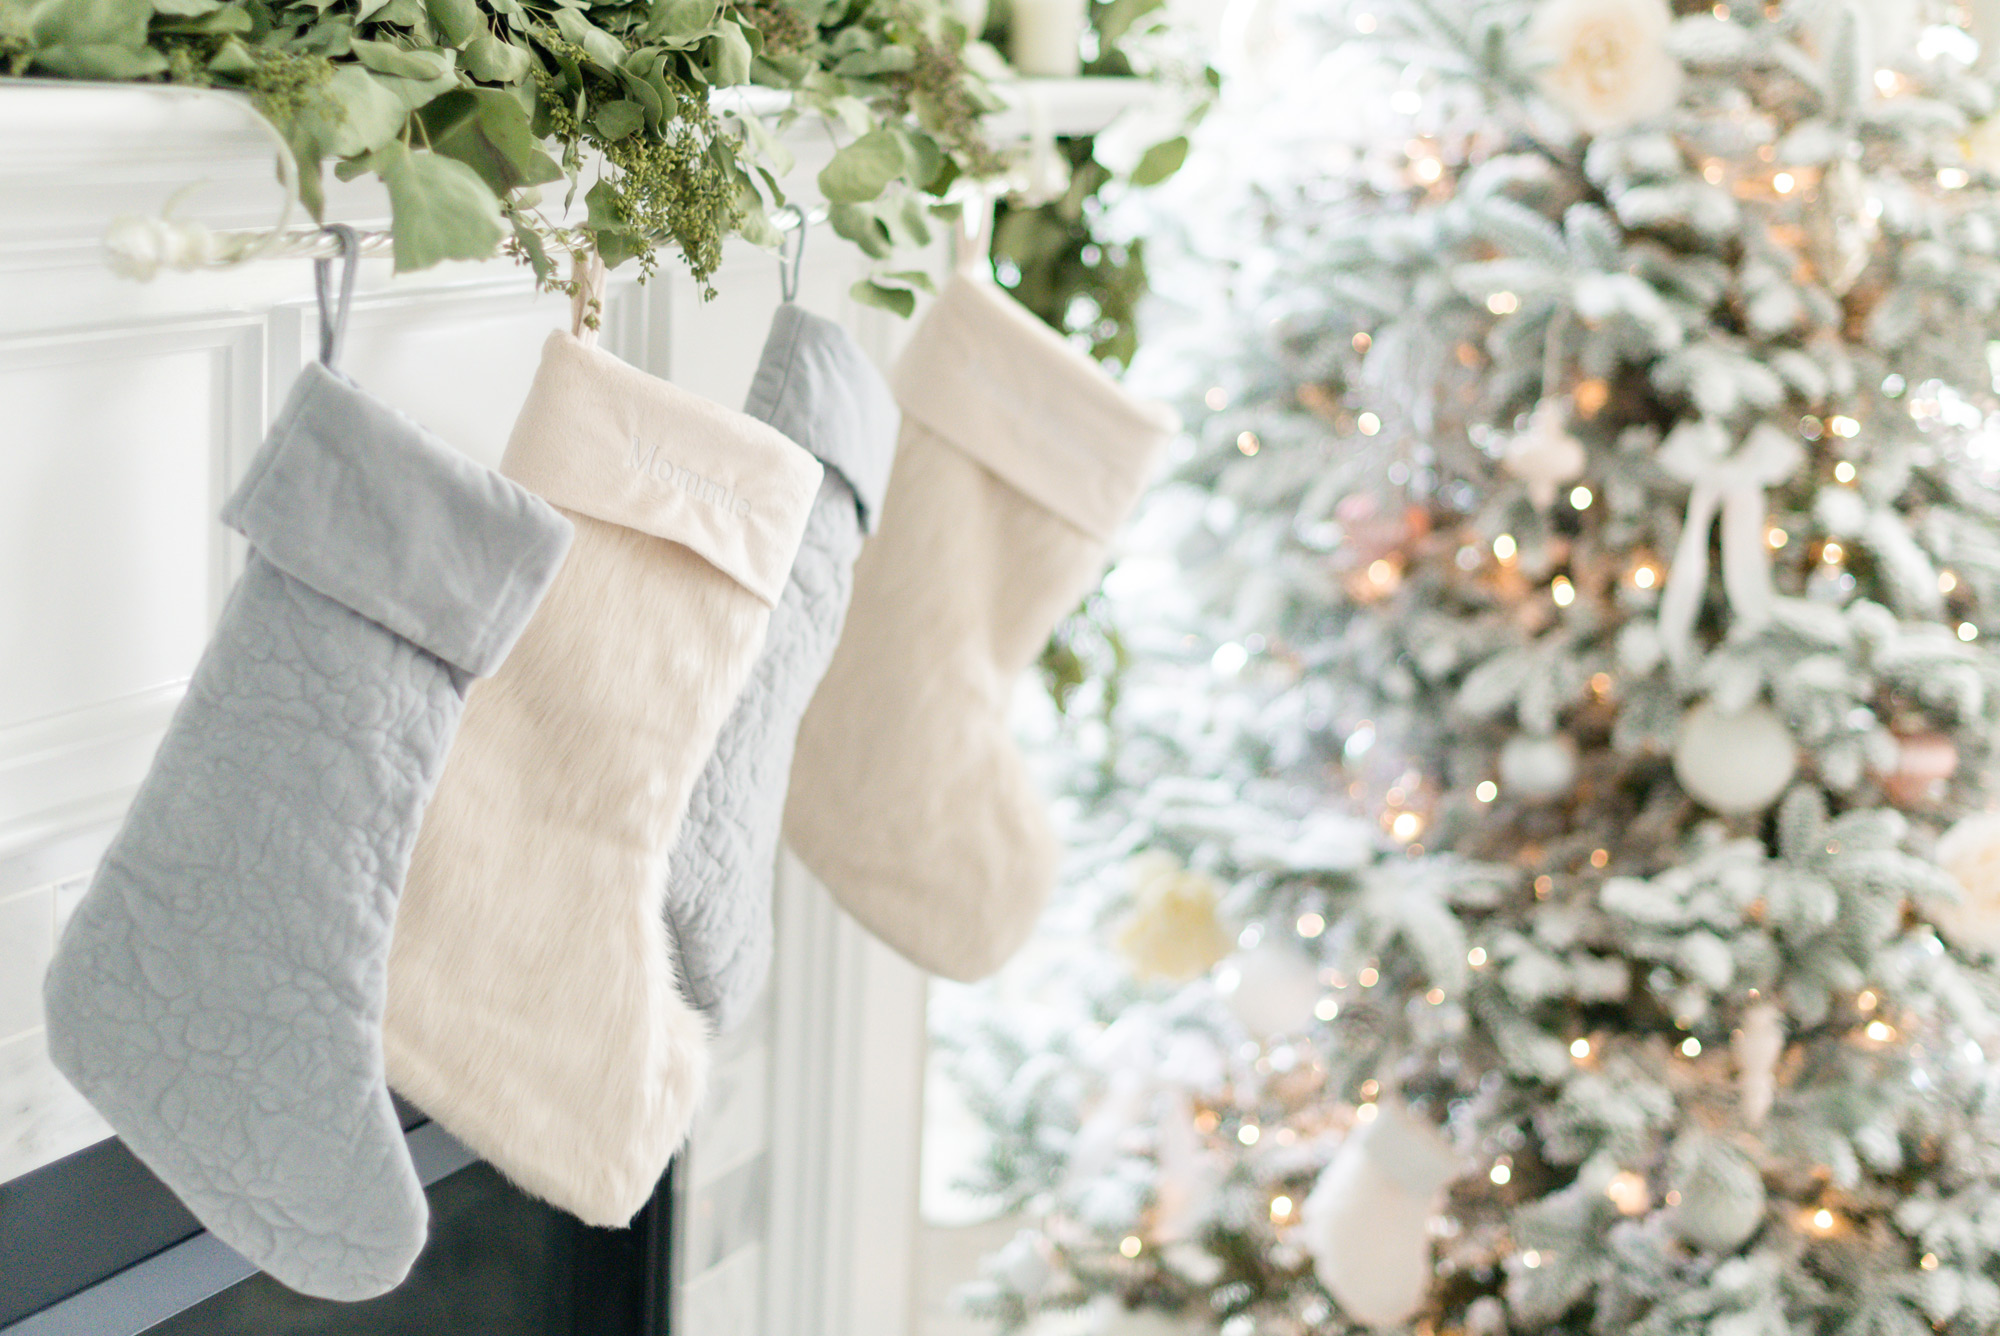 Christmas Stockings | Holiday Design | Lifestyle Blogger Elle Bowes shares holiday home decor ideas.